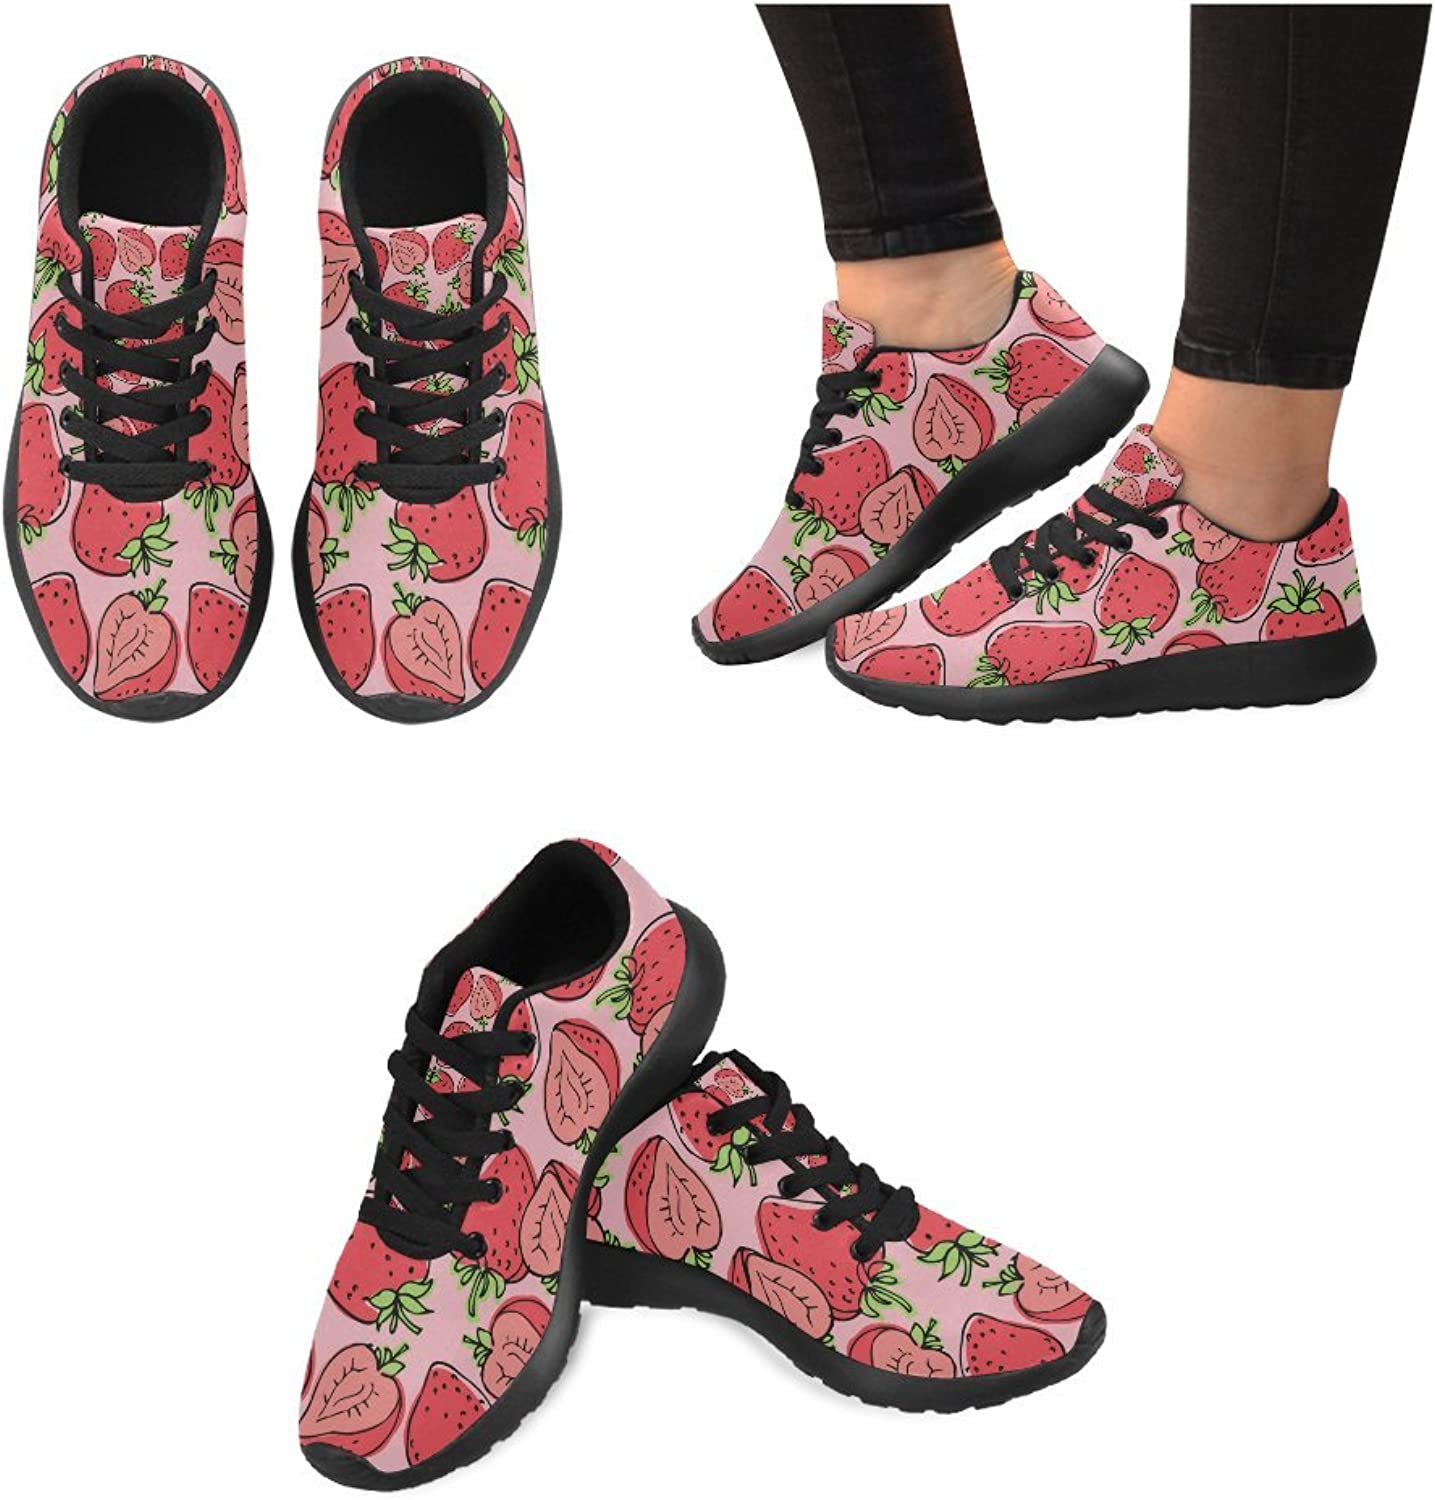 InterestPrint Cute Strawberries Pattern Print on Women's Running shoes Casual Lightweight Athletic Sneakers US Size 6-15 Black